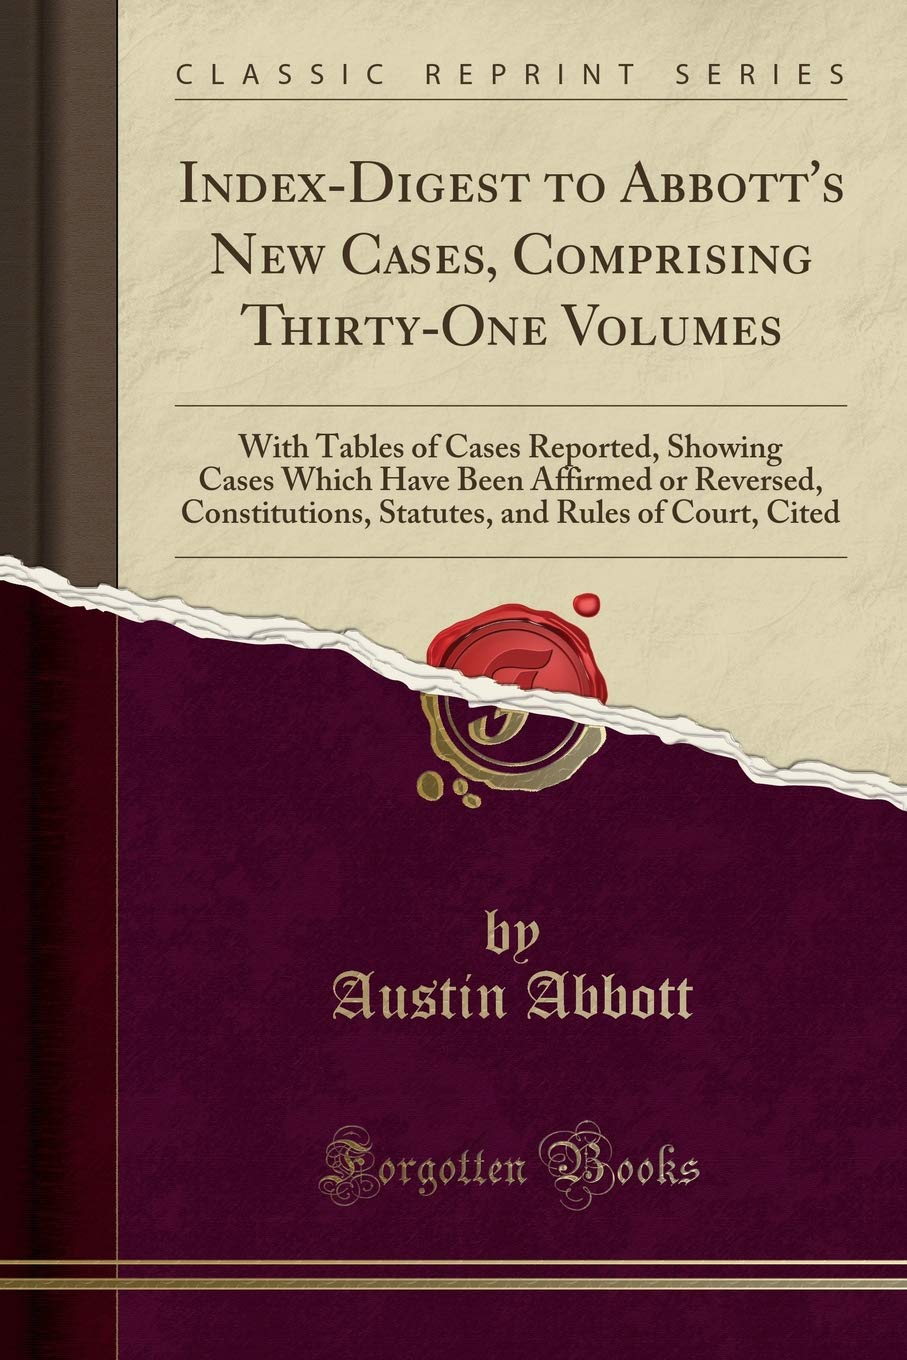 Index-Digest to Abbott's New Cases, Comprising Thirty-One Volumes: With Tables of Cases Reported, Showing Cases Which Have Been Affirmed or Reversed, ... and Rules of Court, Cited (Classic Reprint) PDF ePub book